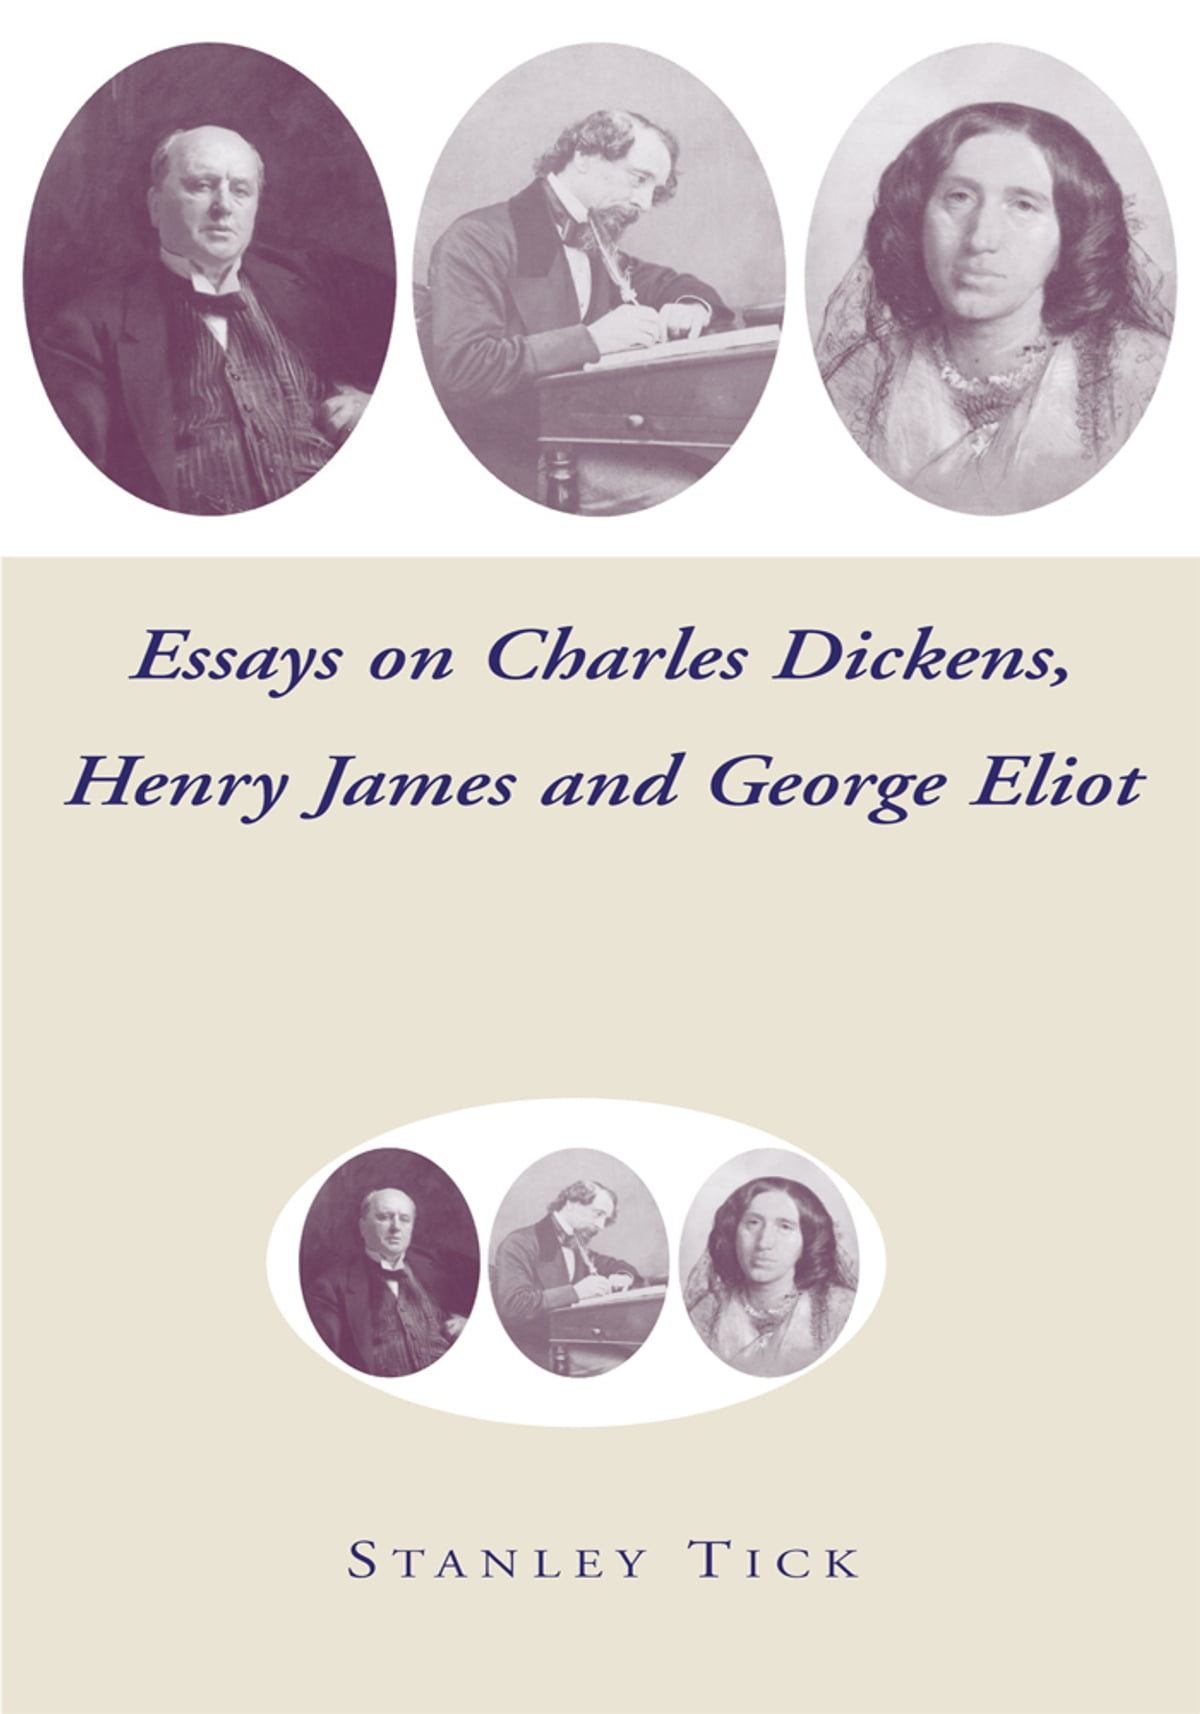 essays on charles dickens henry james and george eliot ebook by  essays on charles dickens henry james and george eliot ebook by stanley tick 9781477164303 rakuten kobo